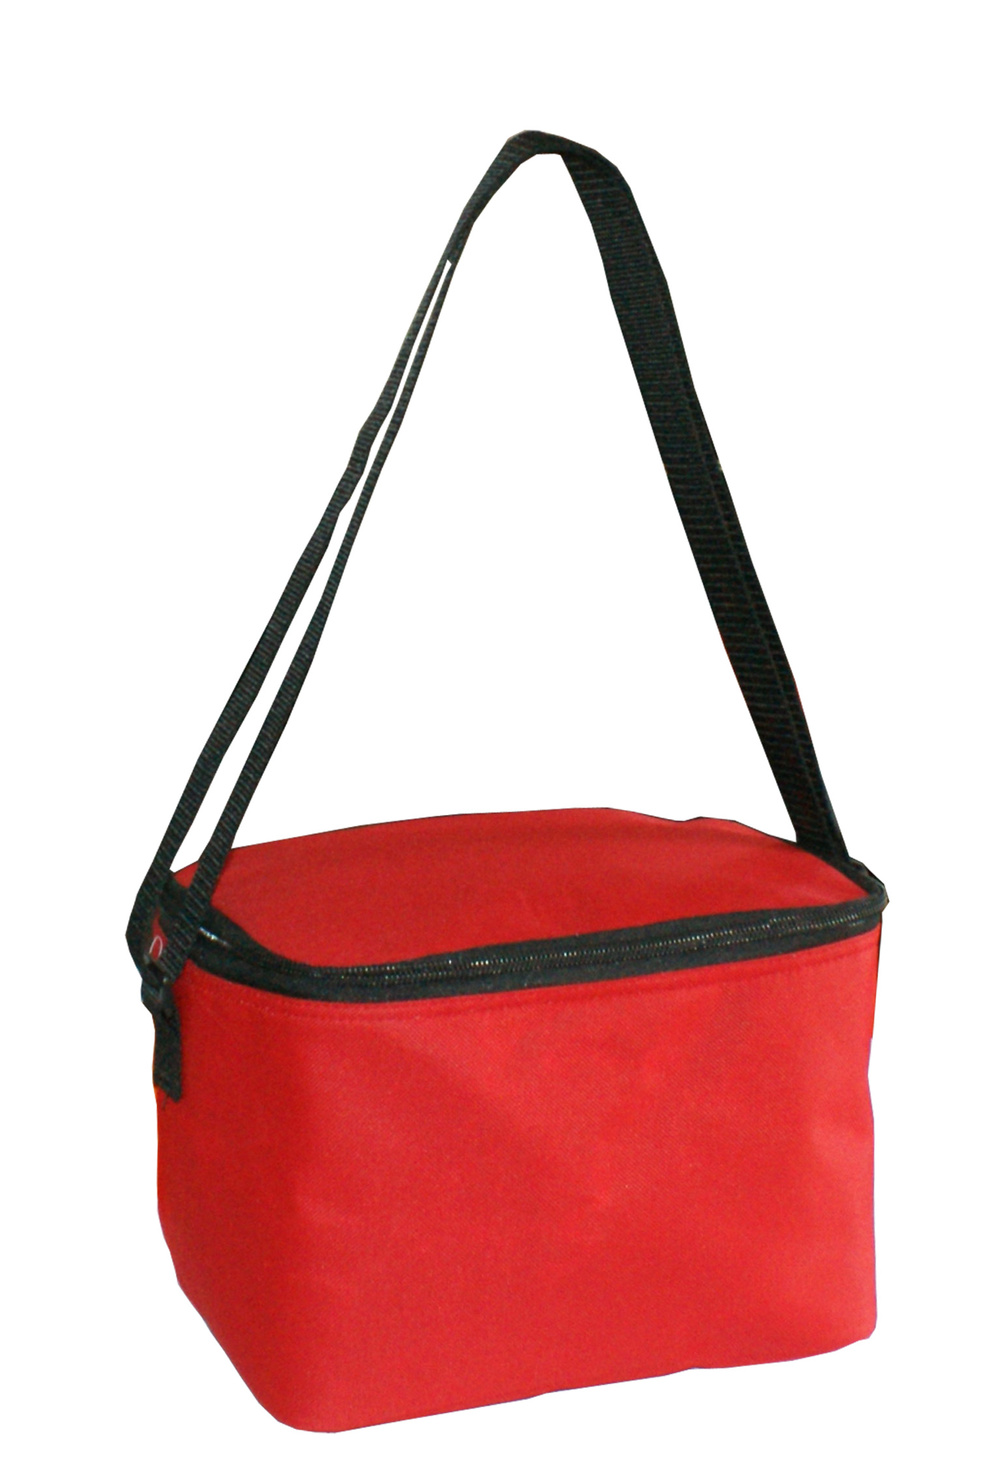 Novwoven cooler handle bag